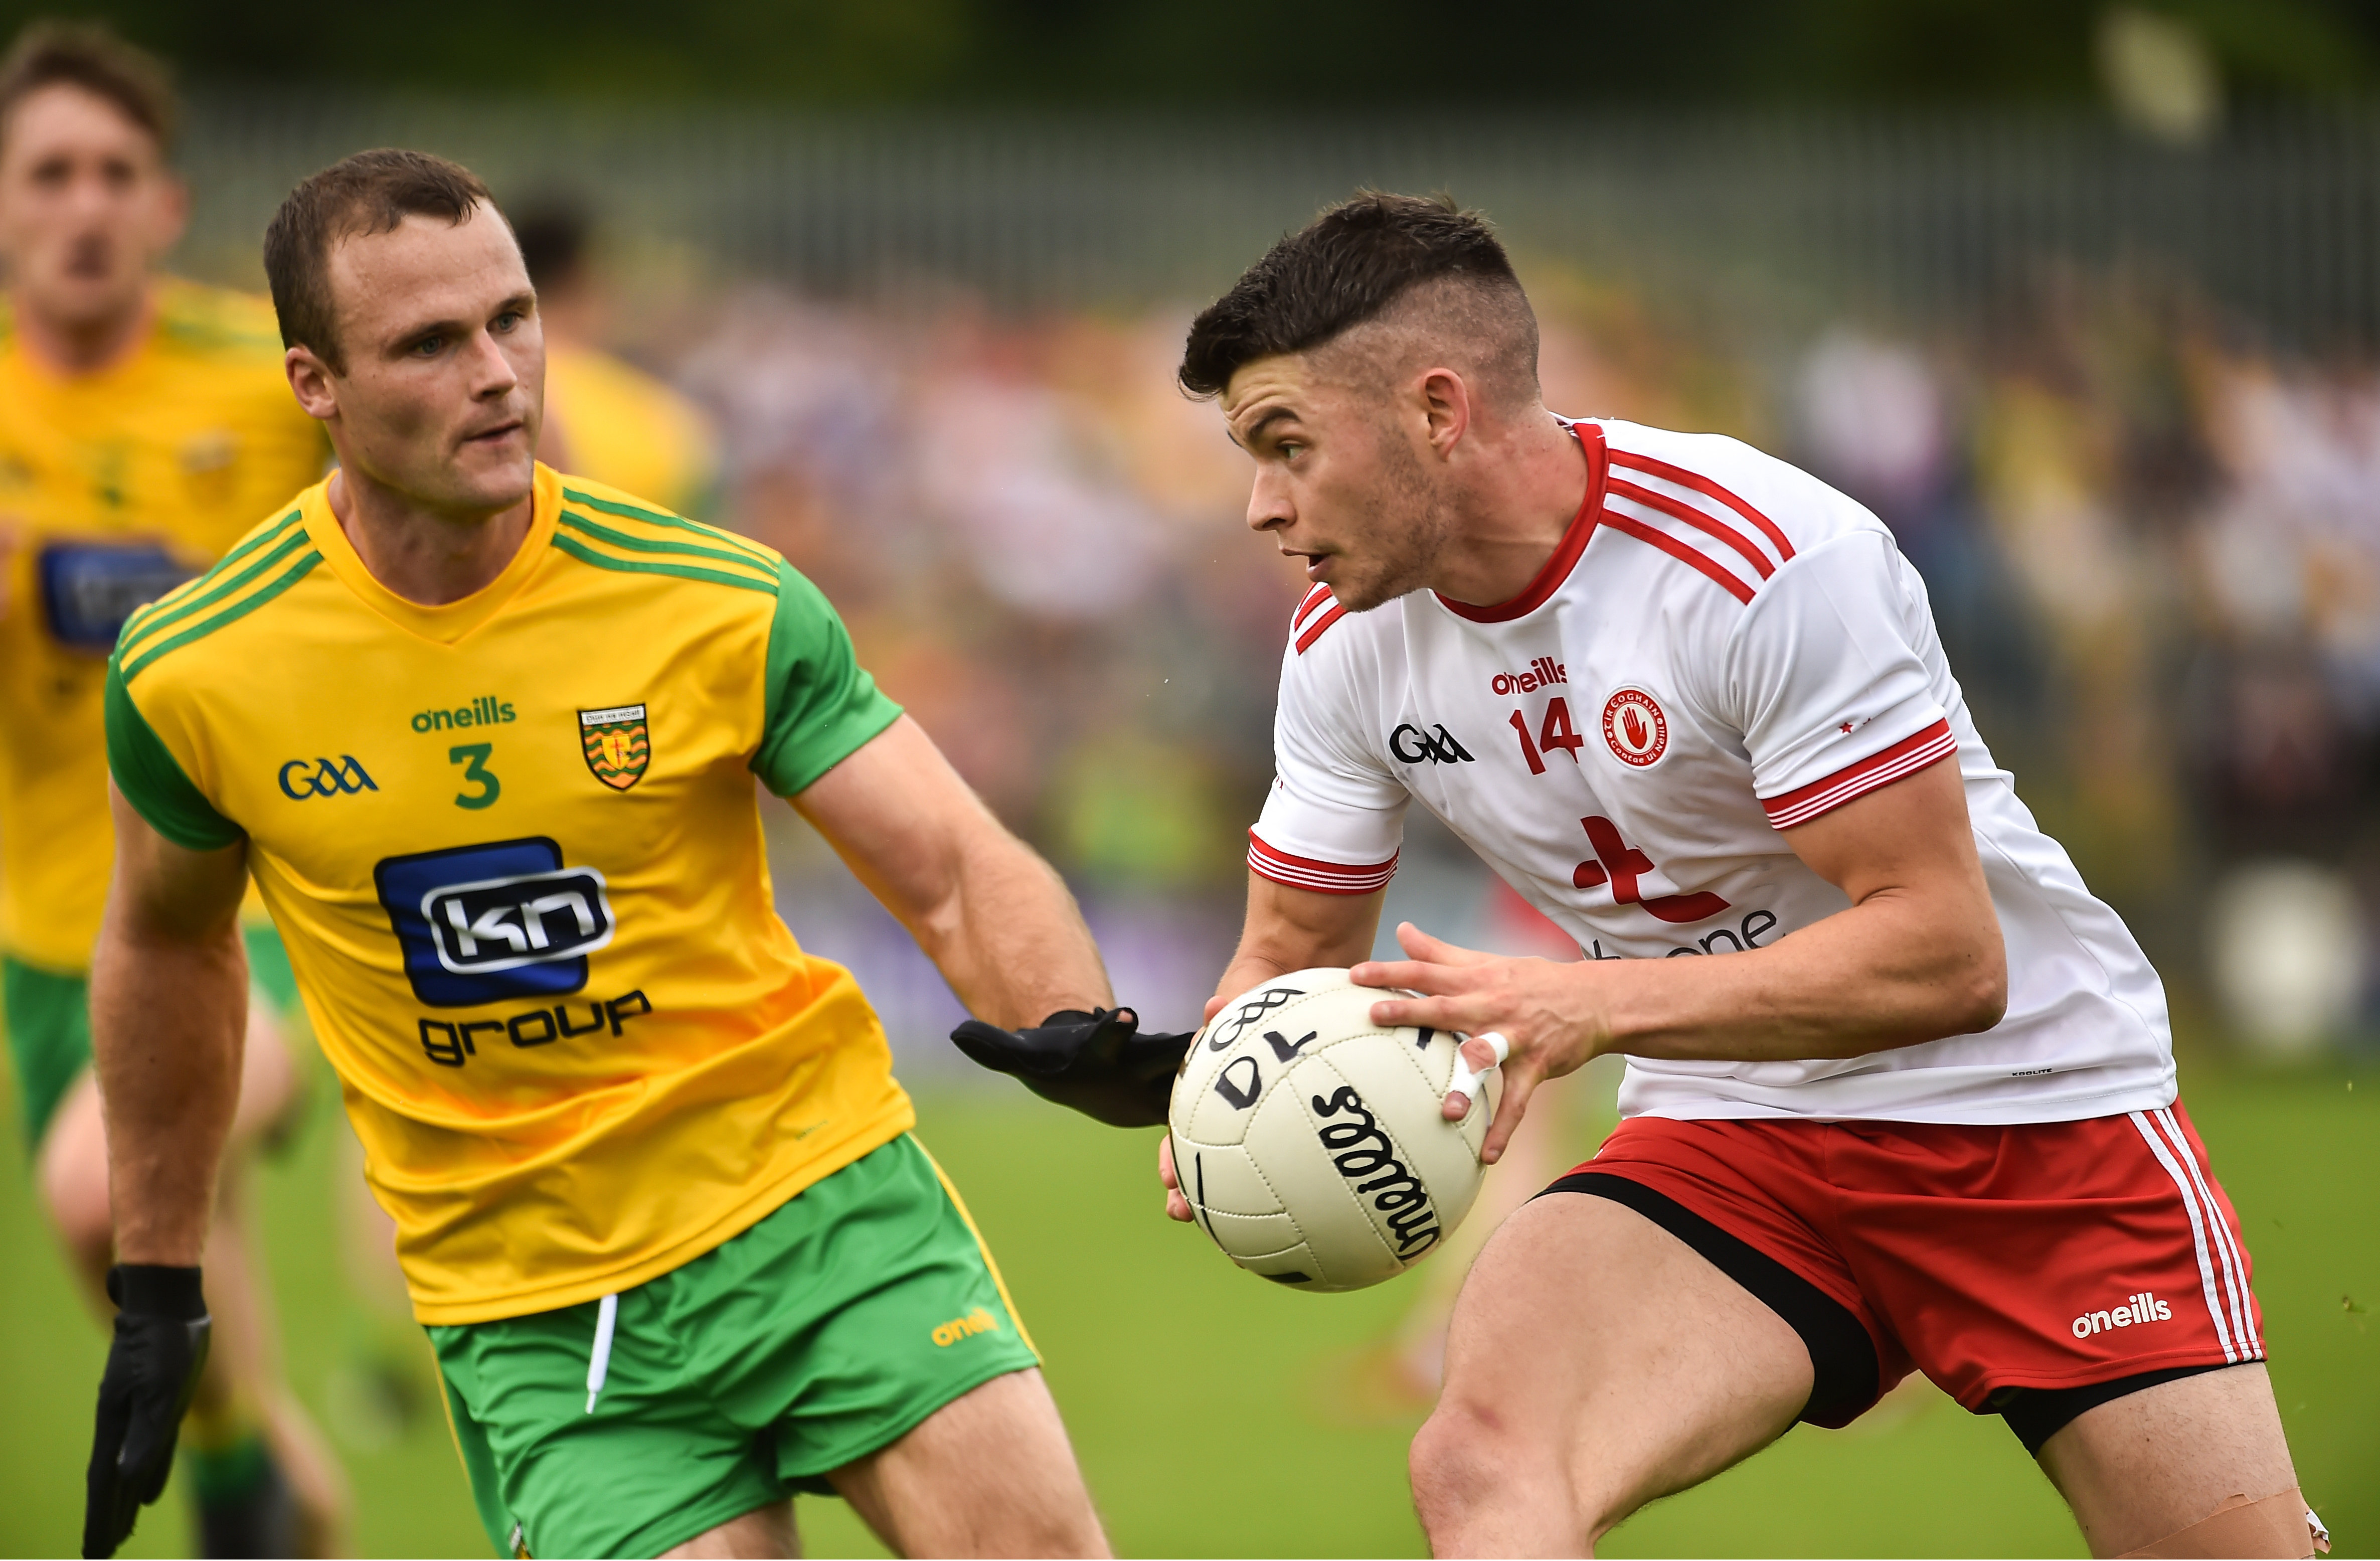 PREVIEW: Donegal and Tyrone to clash in eagerly anticipated Ulster semi-final